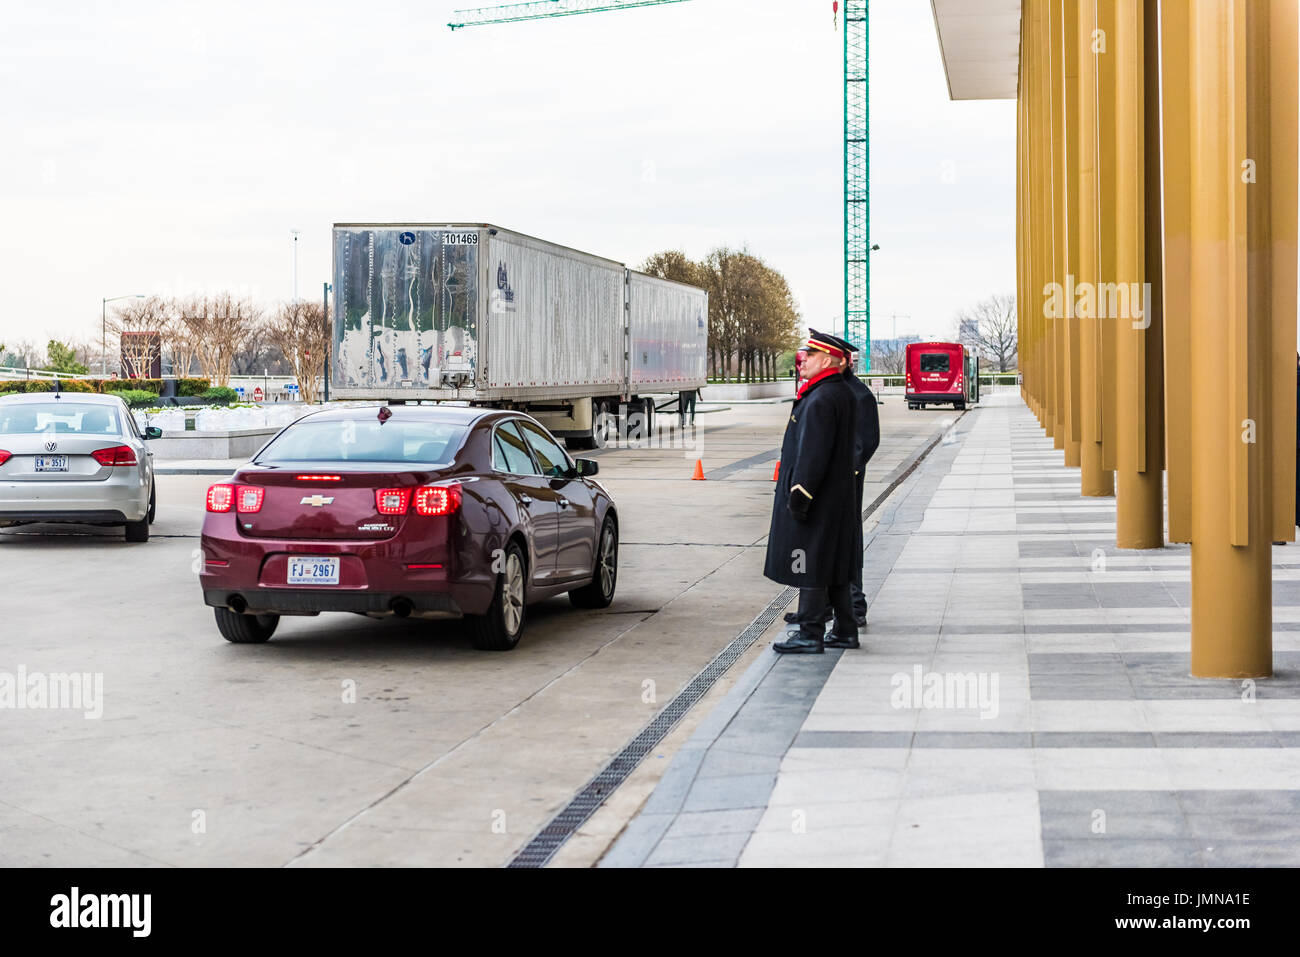 Washington DC, USA - March 20, 2017: John F. Kennedy Center entrance with cars driving up and doormen assisting - Stock Image